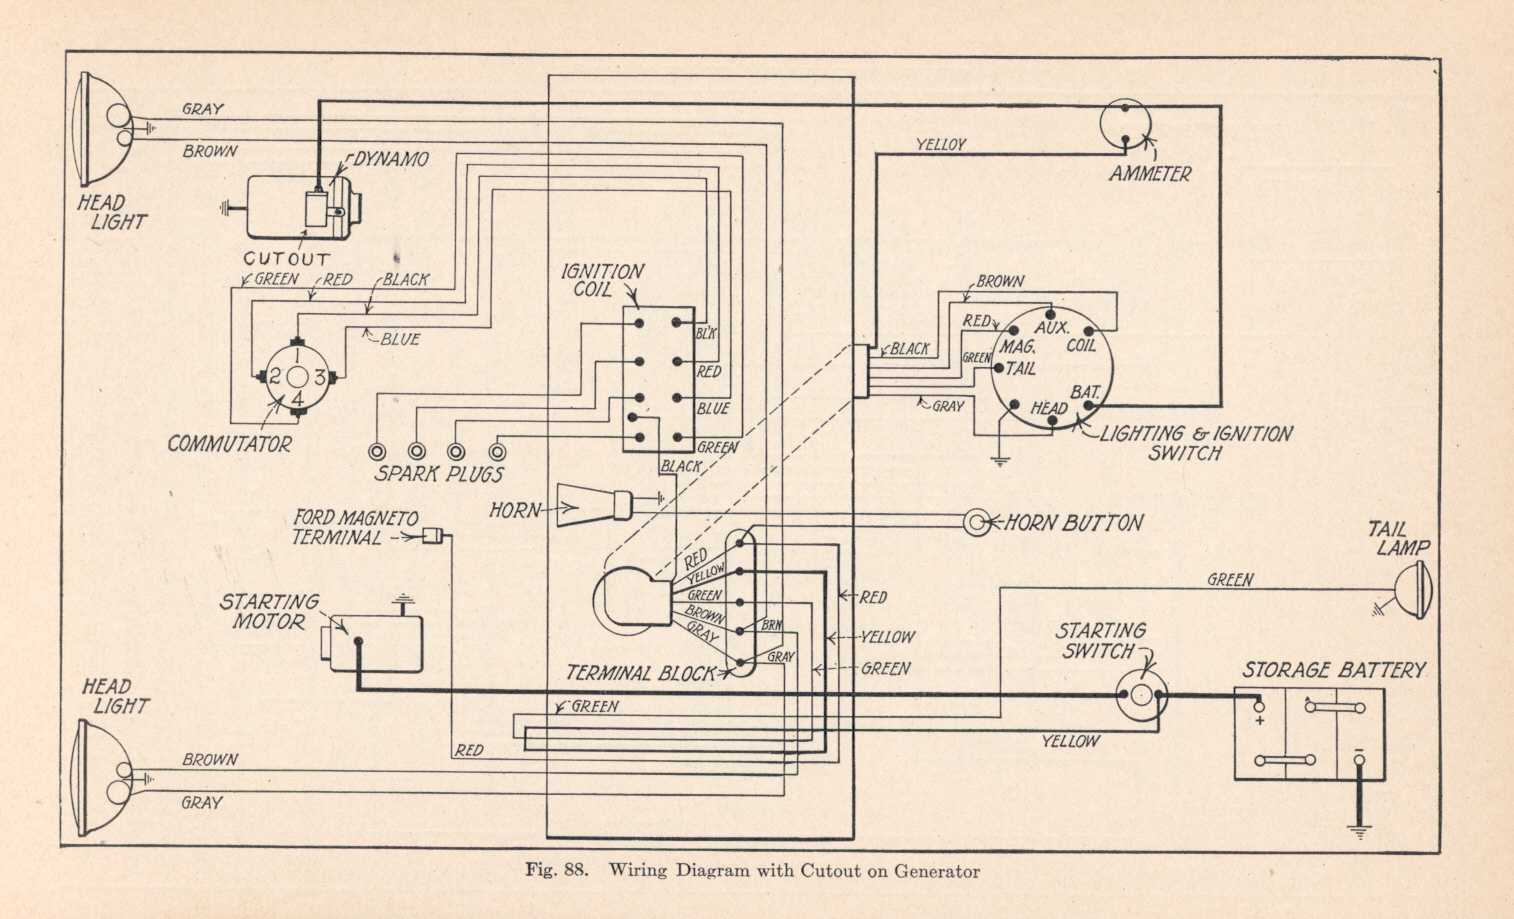 Model t ford forum amp meter wiring help needed wiring diagram 1919 1925 asfbconference2016 Image collections